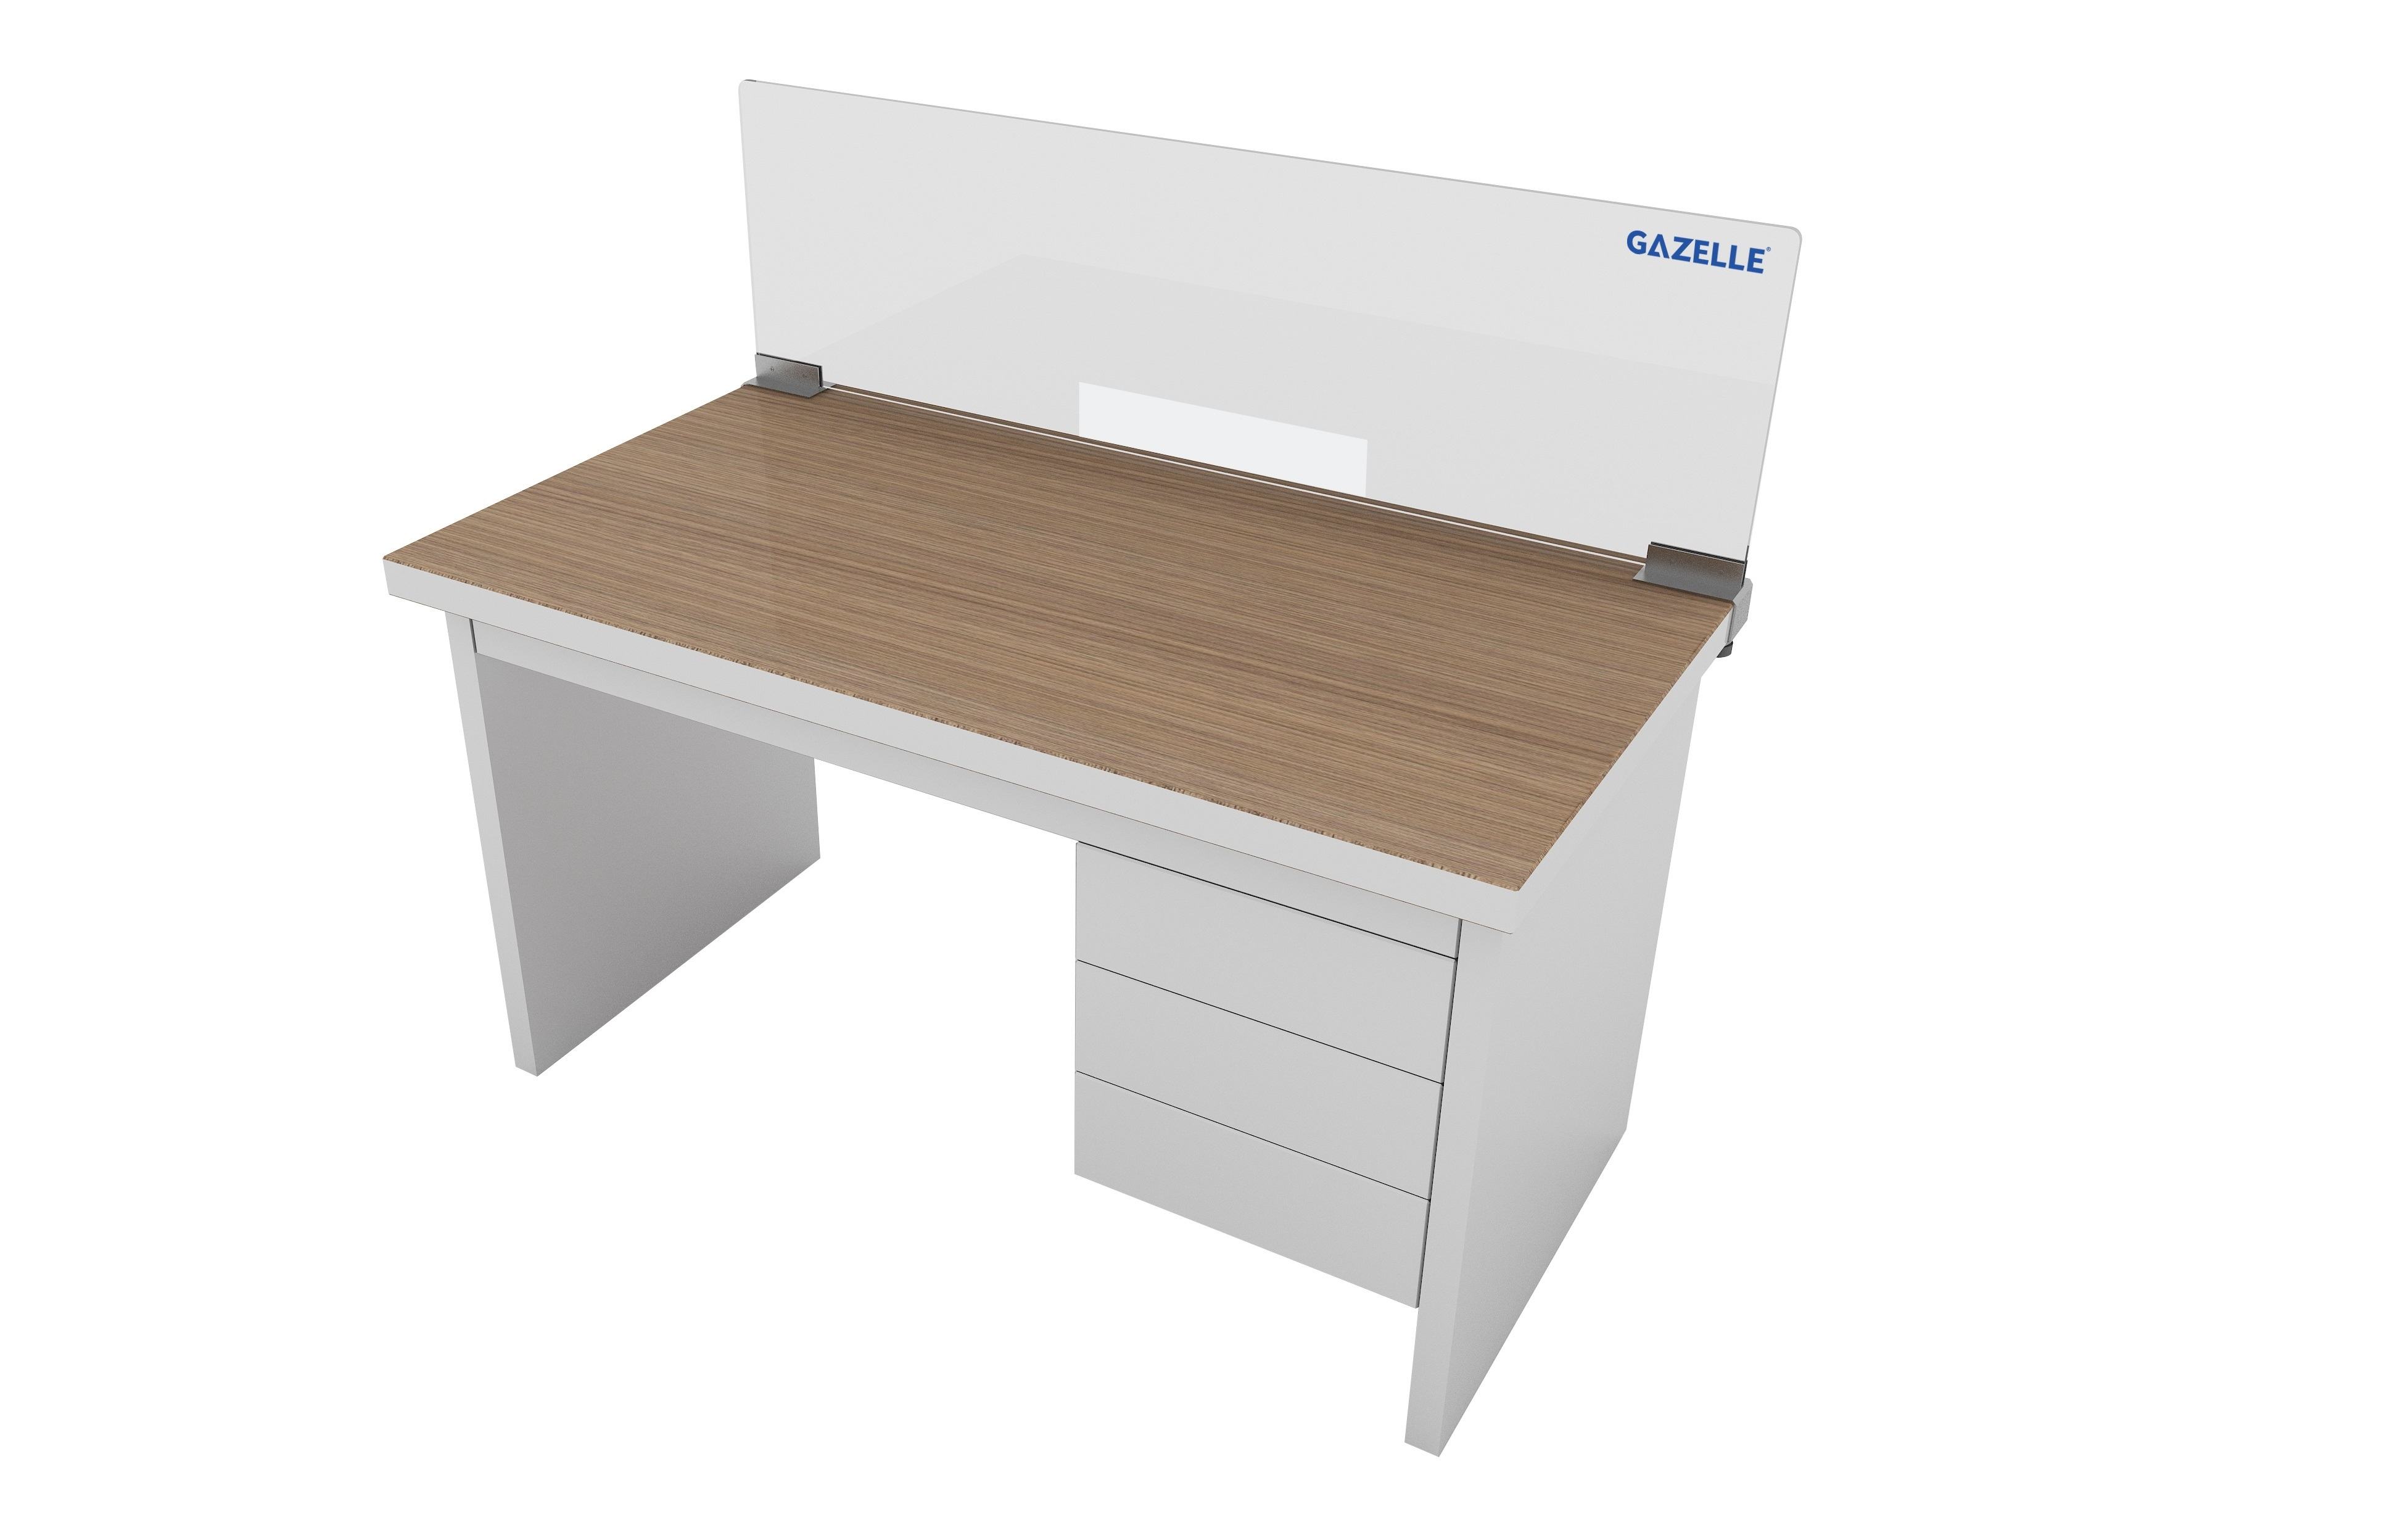 Gazelle_G9612 Front Desk Partition